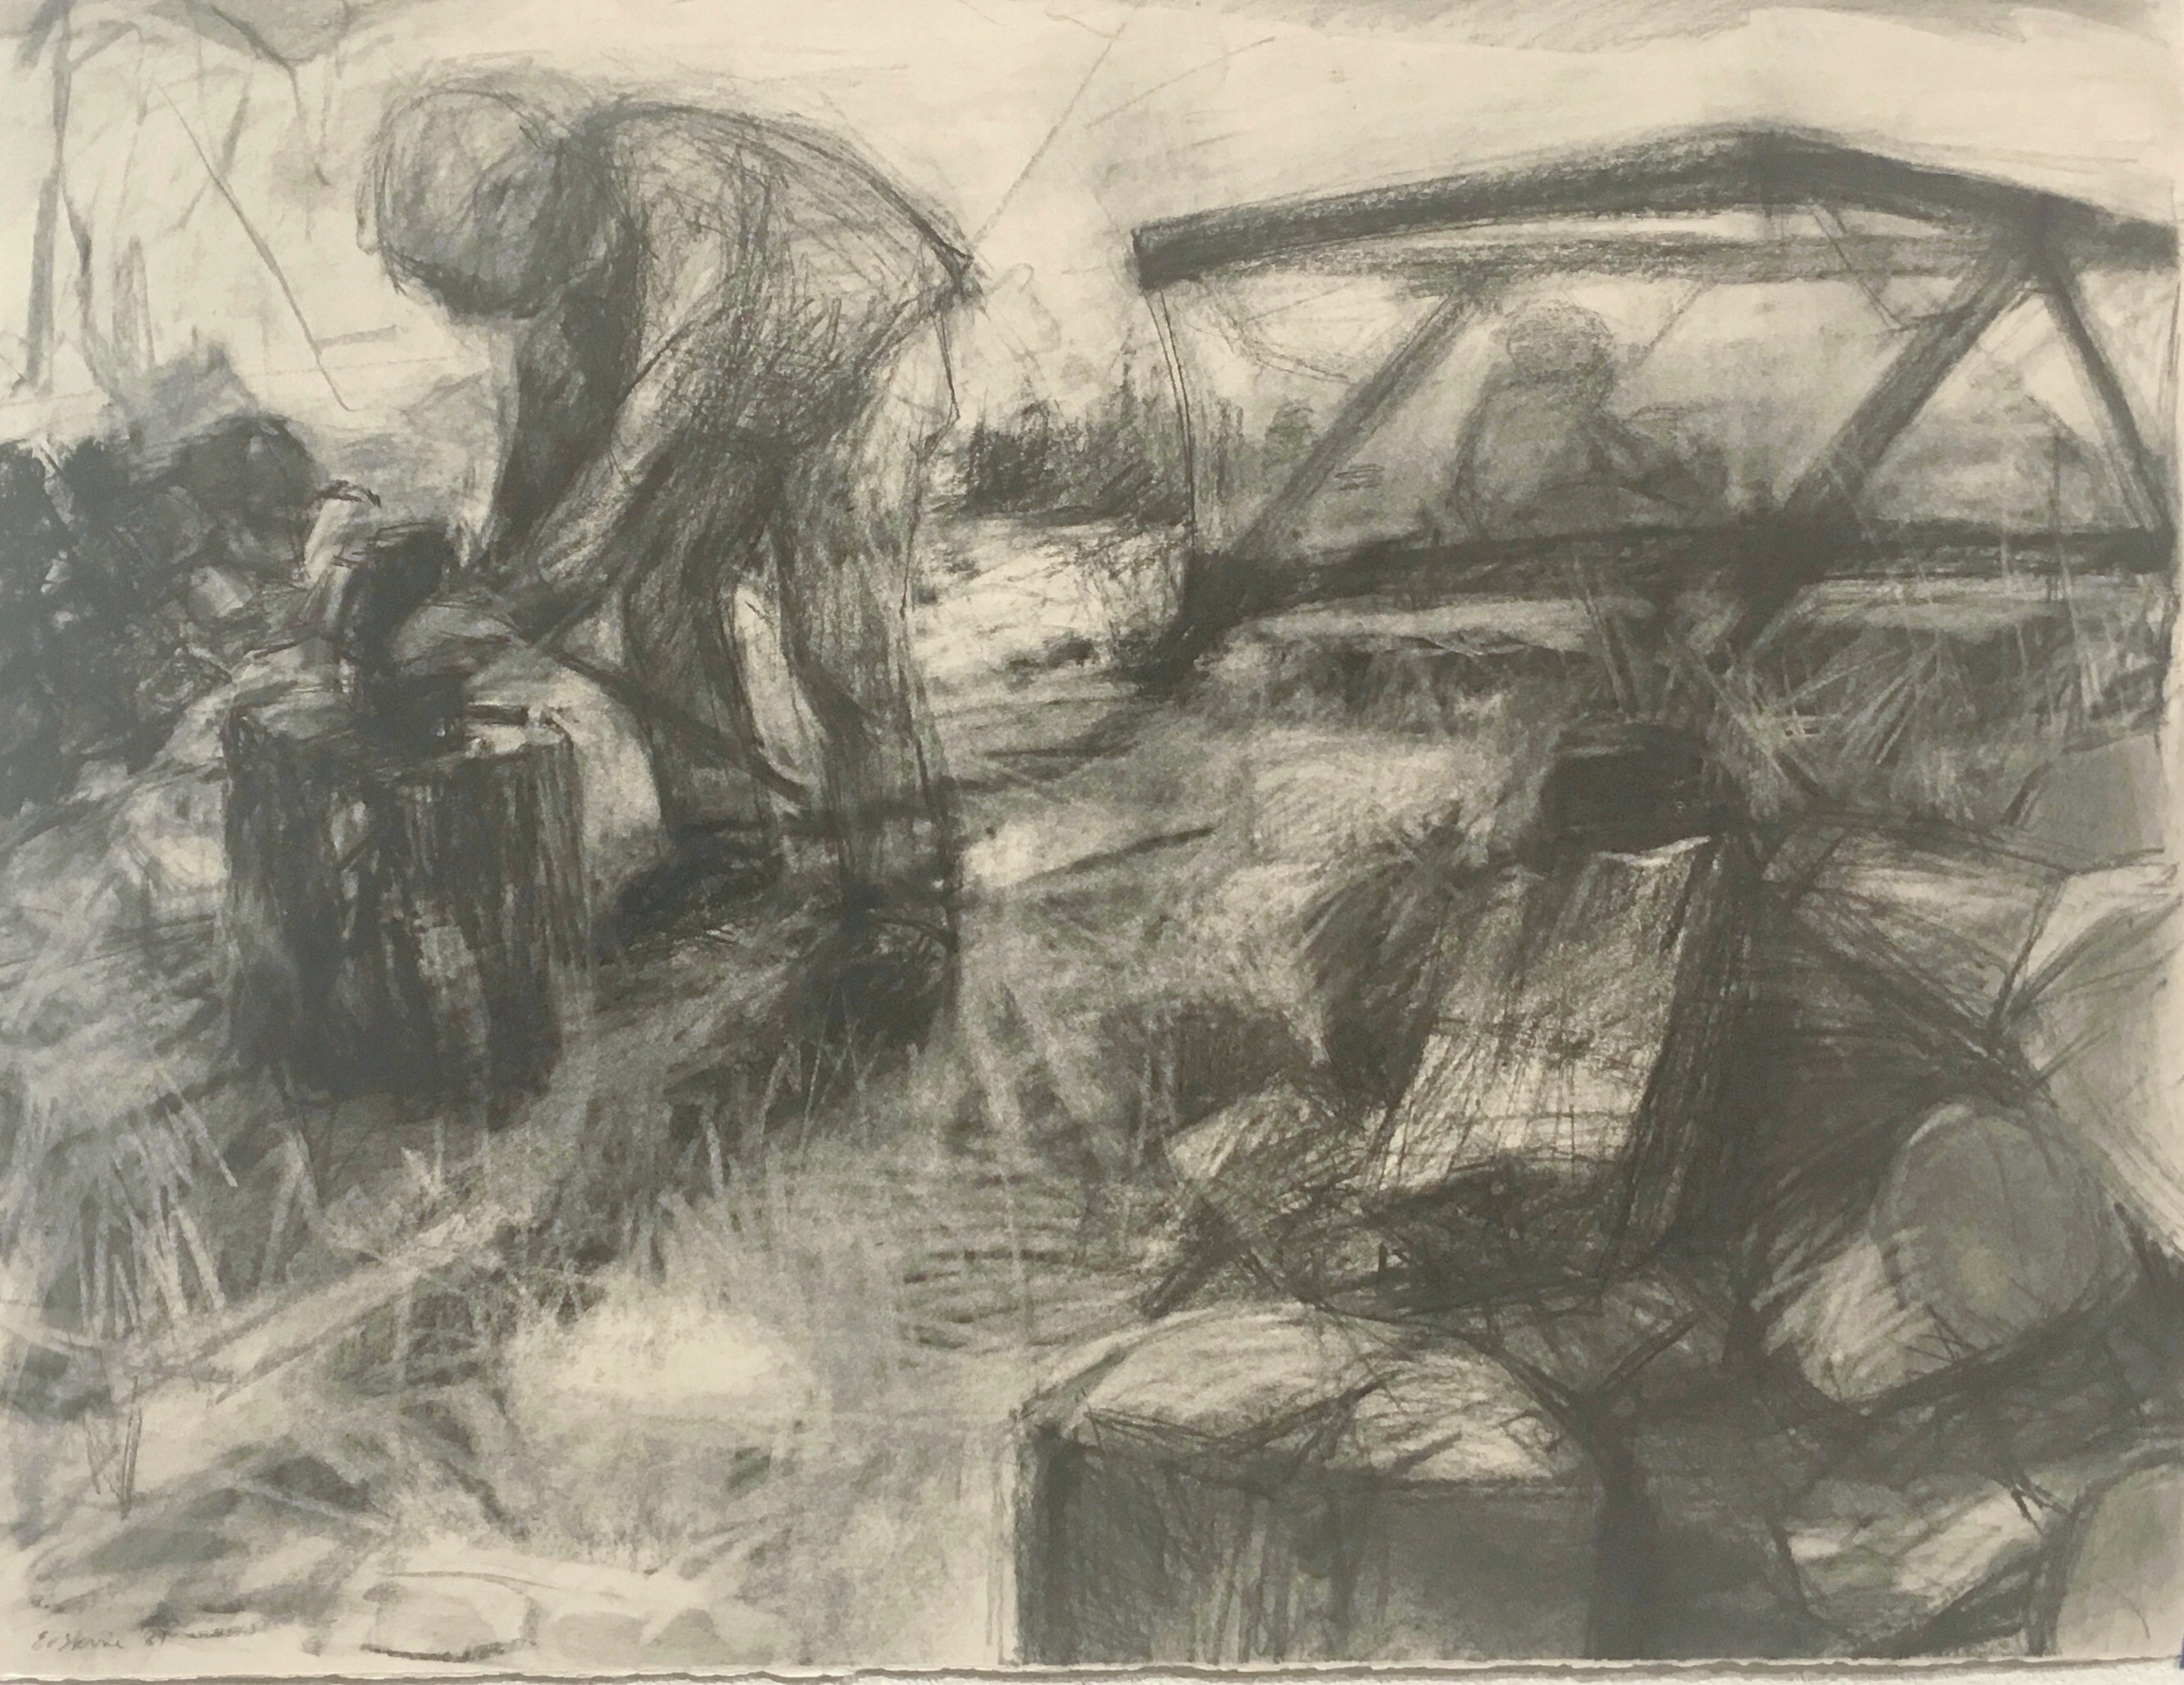 drawing of dad chopping wood, with baby in a playpen